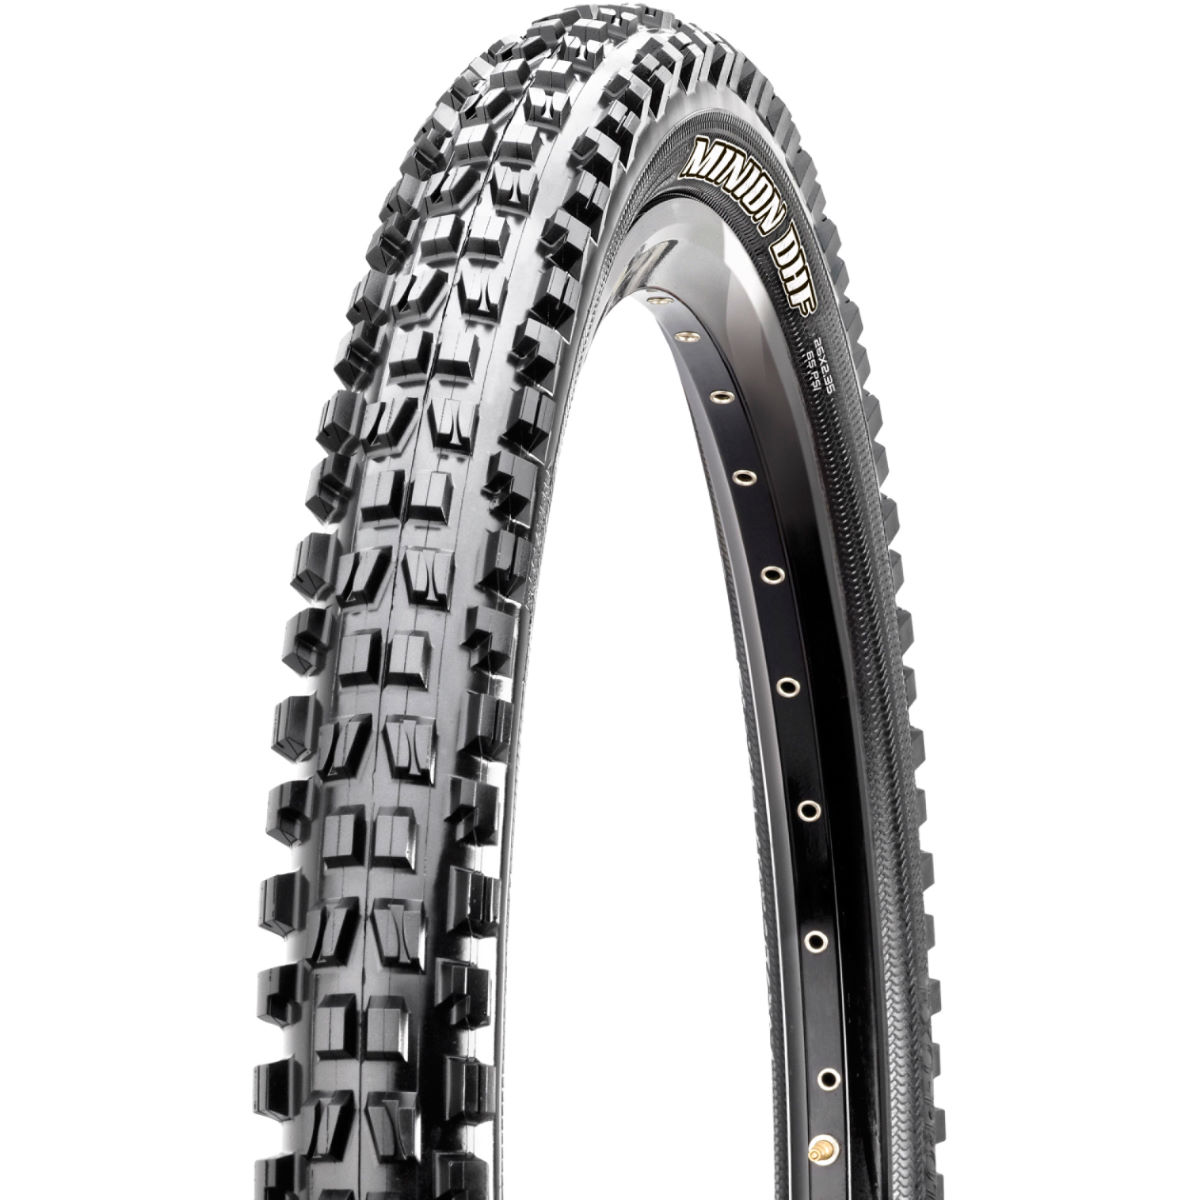 Maxxis Minion DHF Wired MTB Tyre - Cubiertas MTB